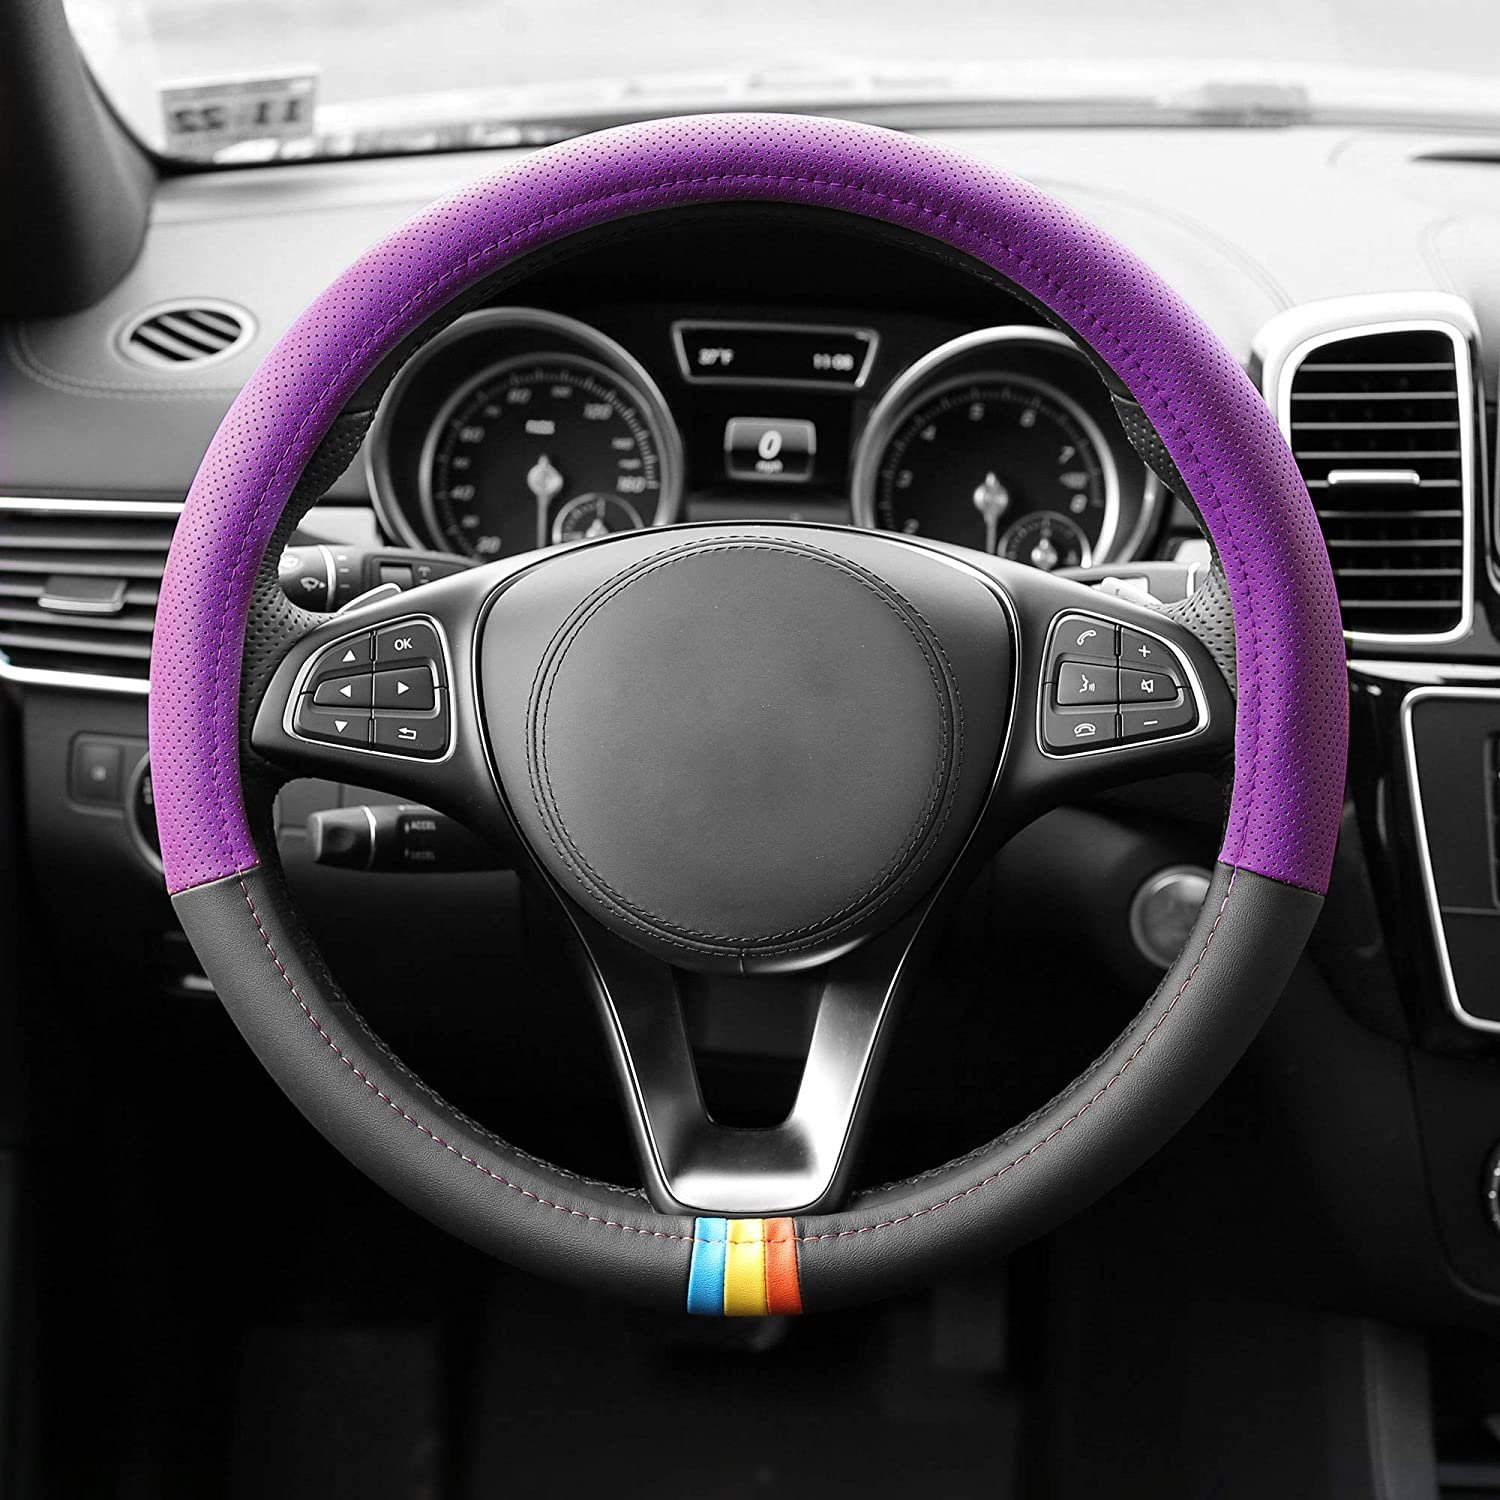 FH Group FH2008 Full Spectrum Genuine Leather Steering Wheel Cover (Purple) – Universal Fit for Cars Trucks & SUVs